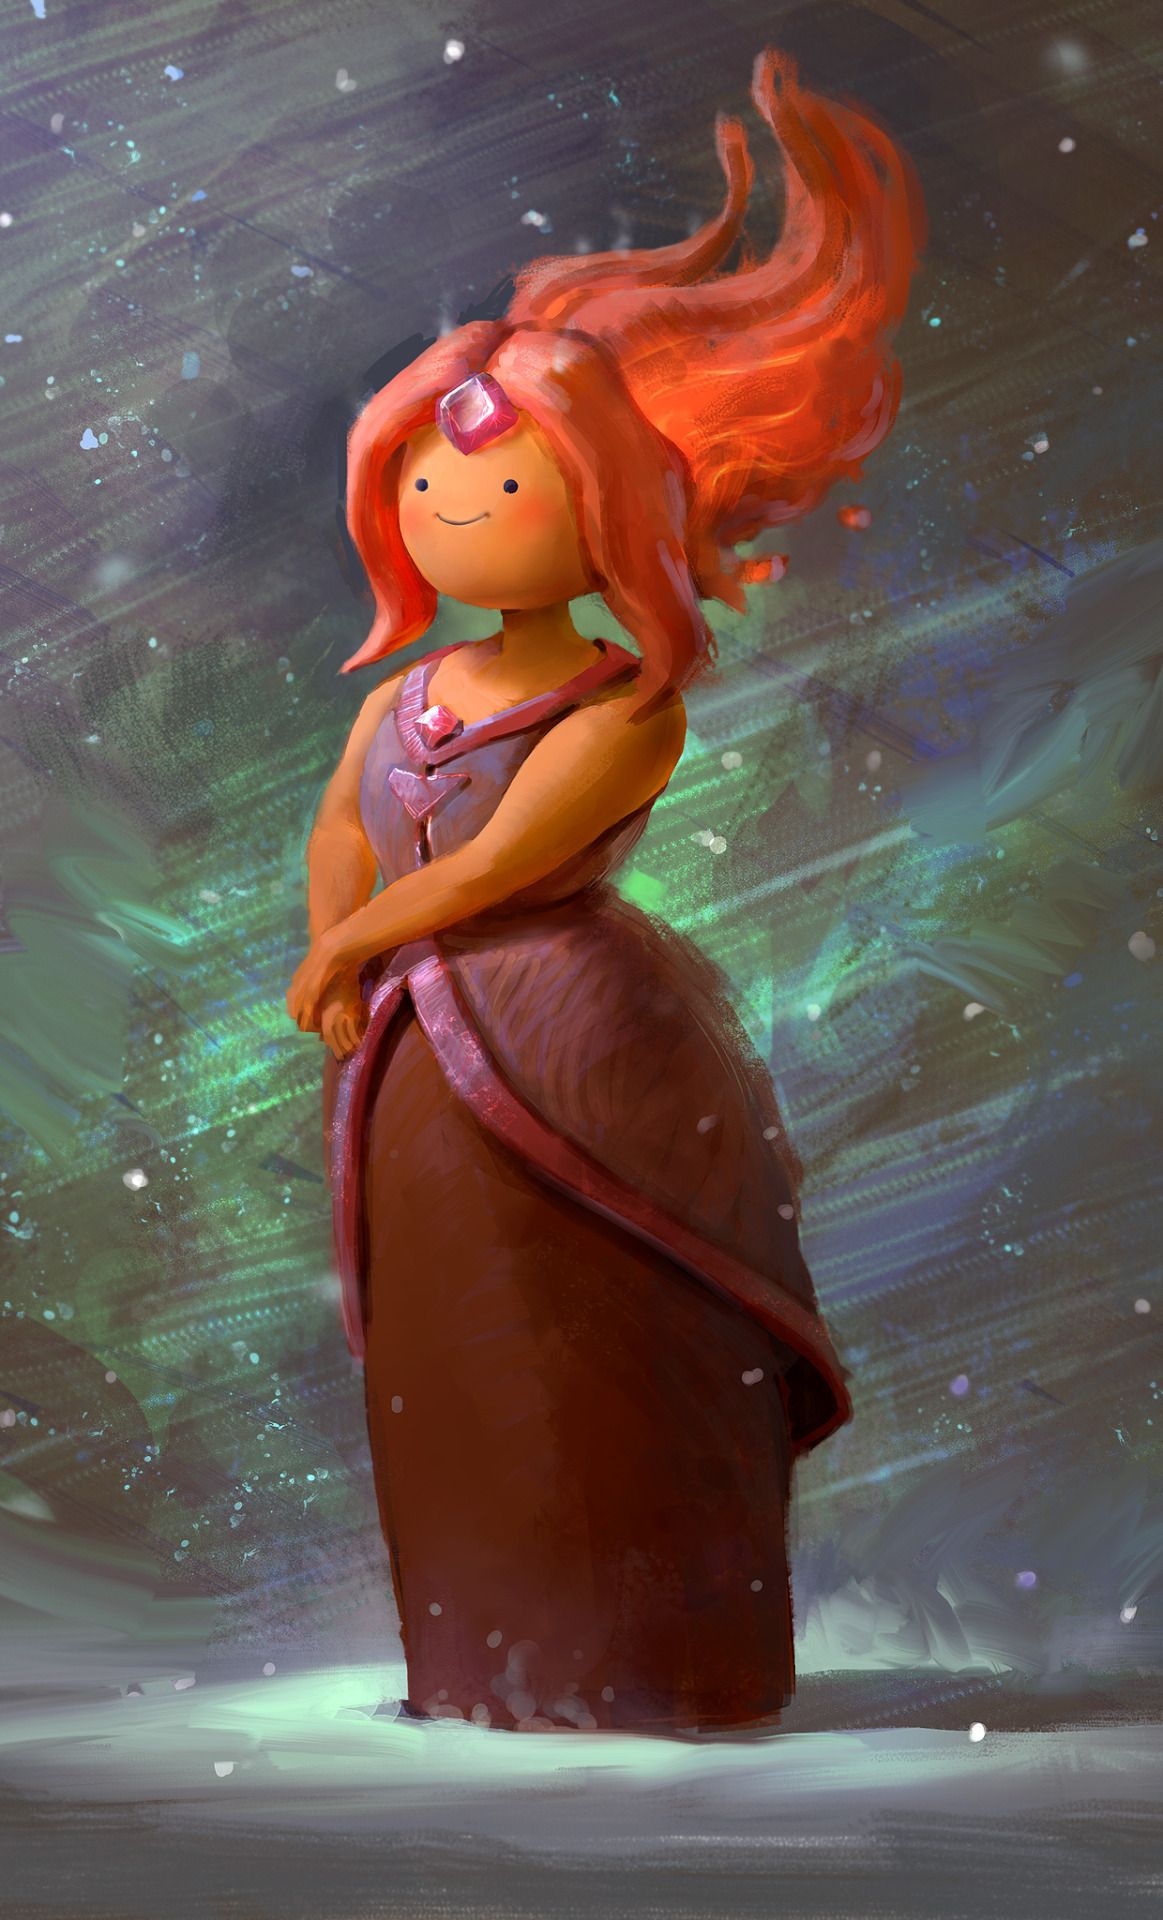 """Flame Princess by Mike Azevedo, Brazil """"she loves the snow :) hey guys, sorry for the reupload. here's my Flame Princess, had a lot of fun with this one! ON to the next ahha"""" {2014}"""